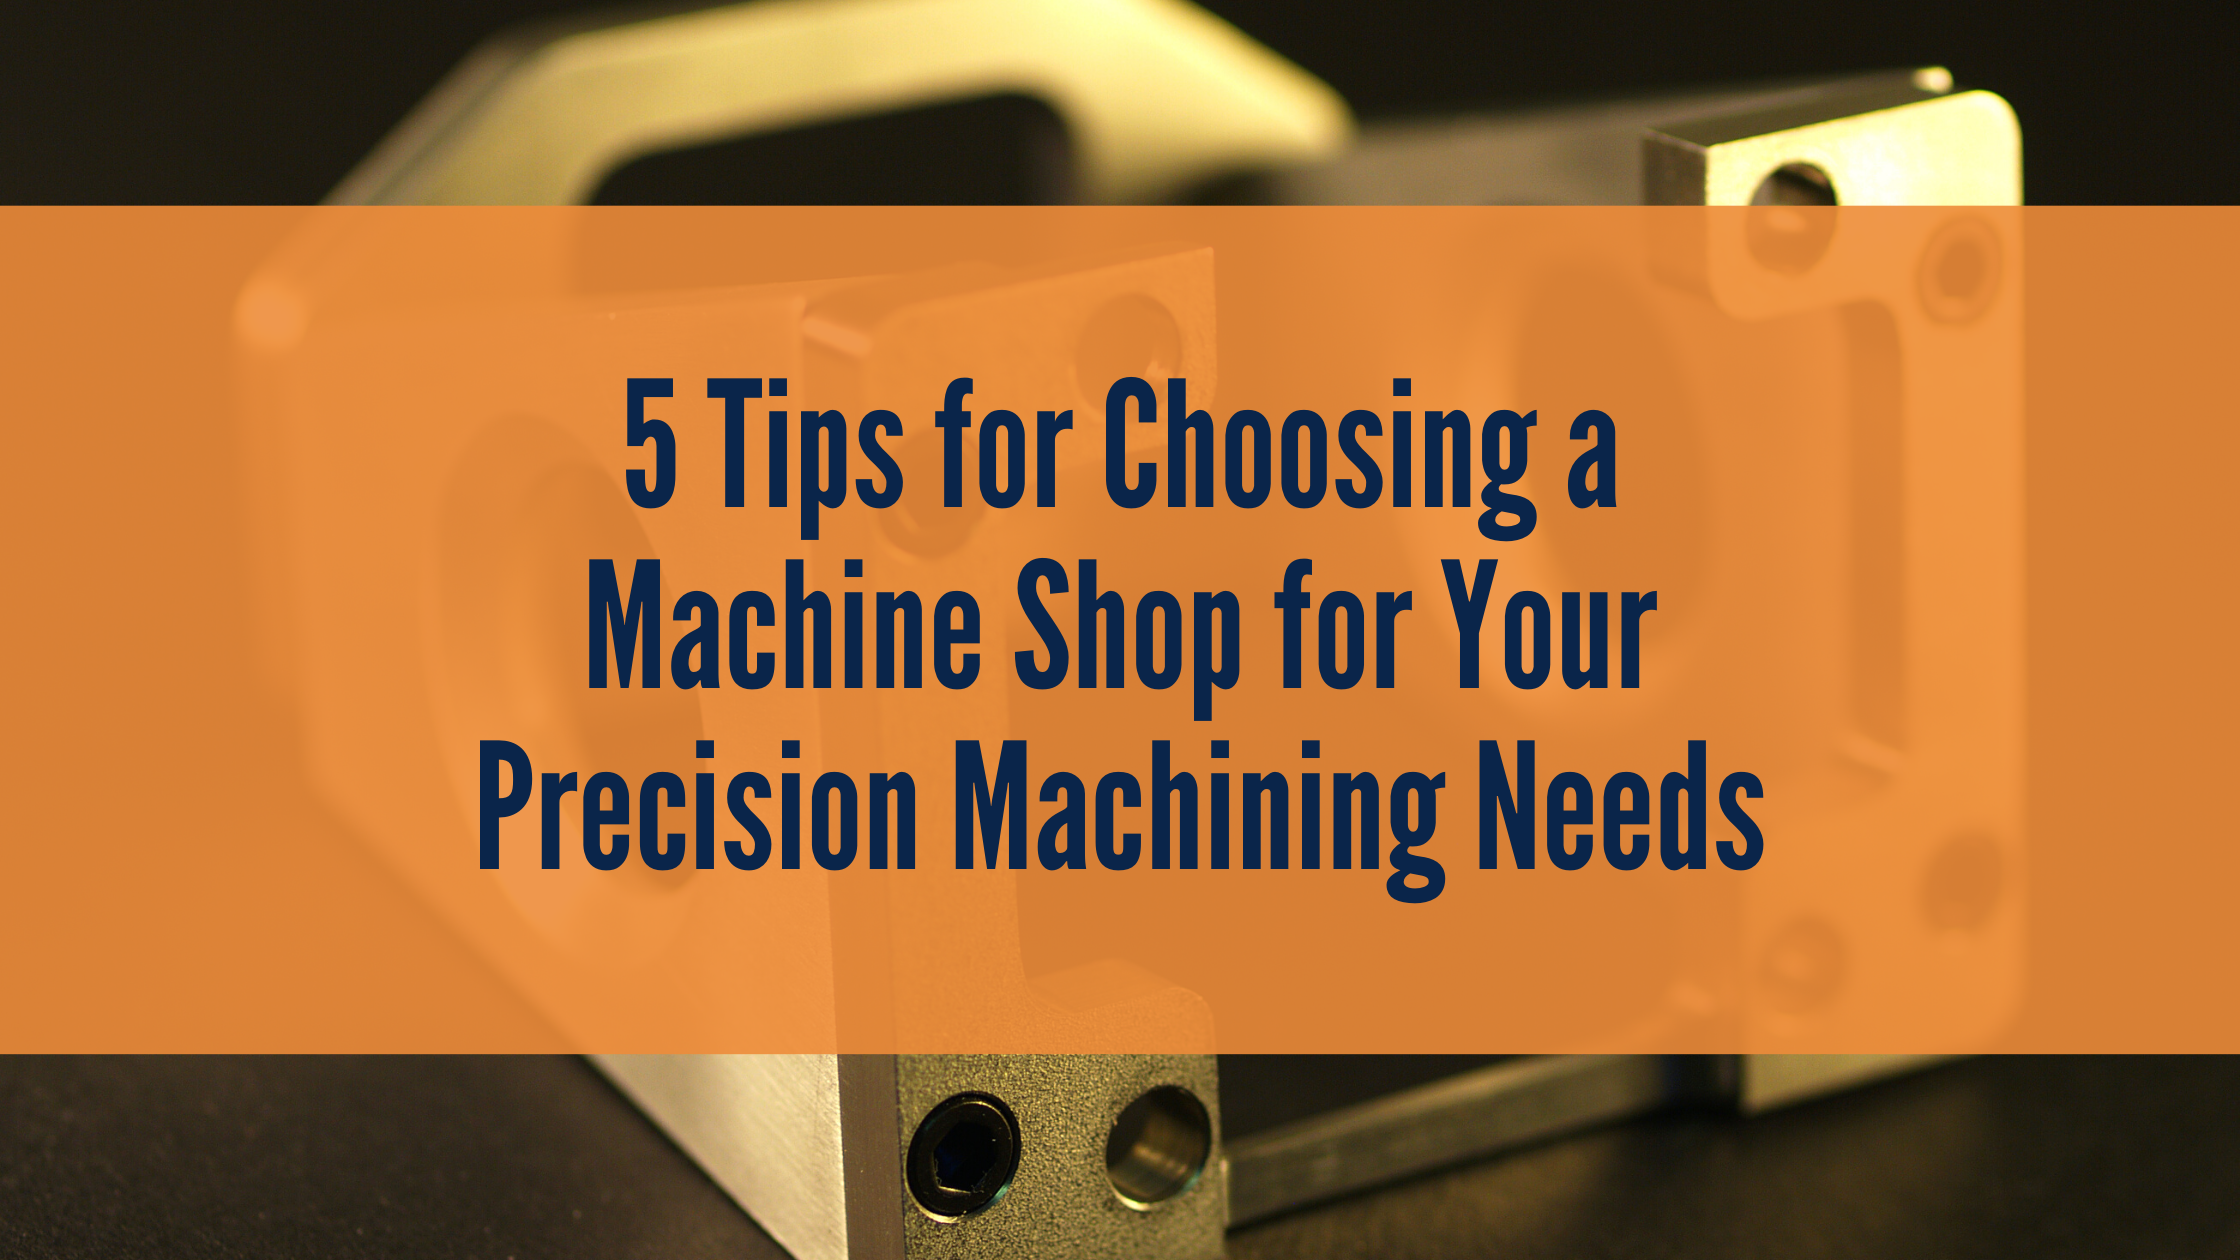 5 Tips for Choosing the Best Machine Shop for Your Precision Machining Needs